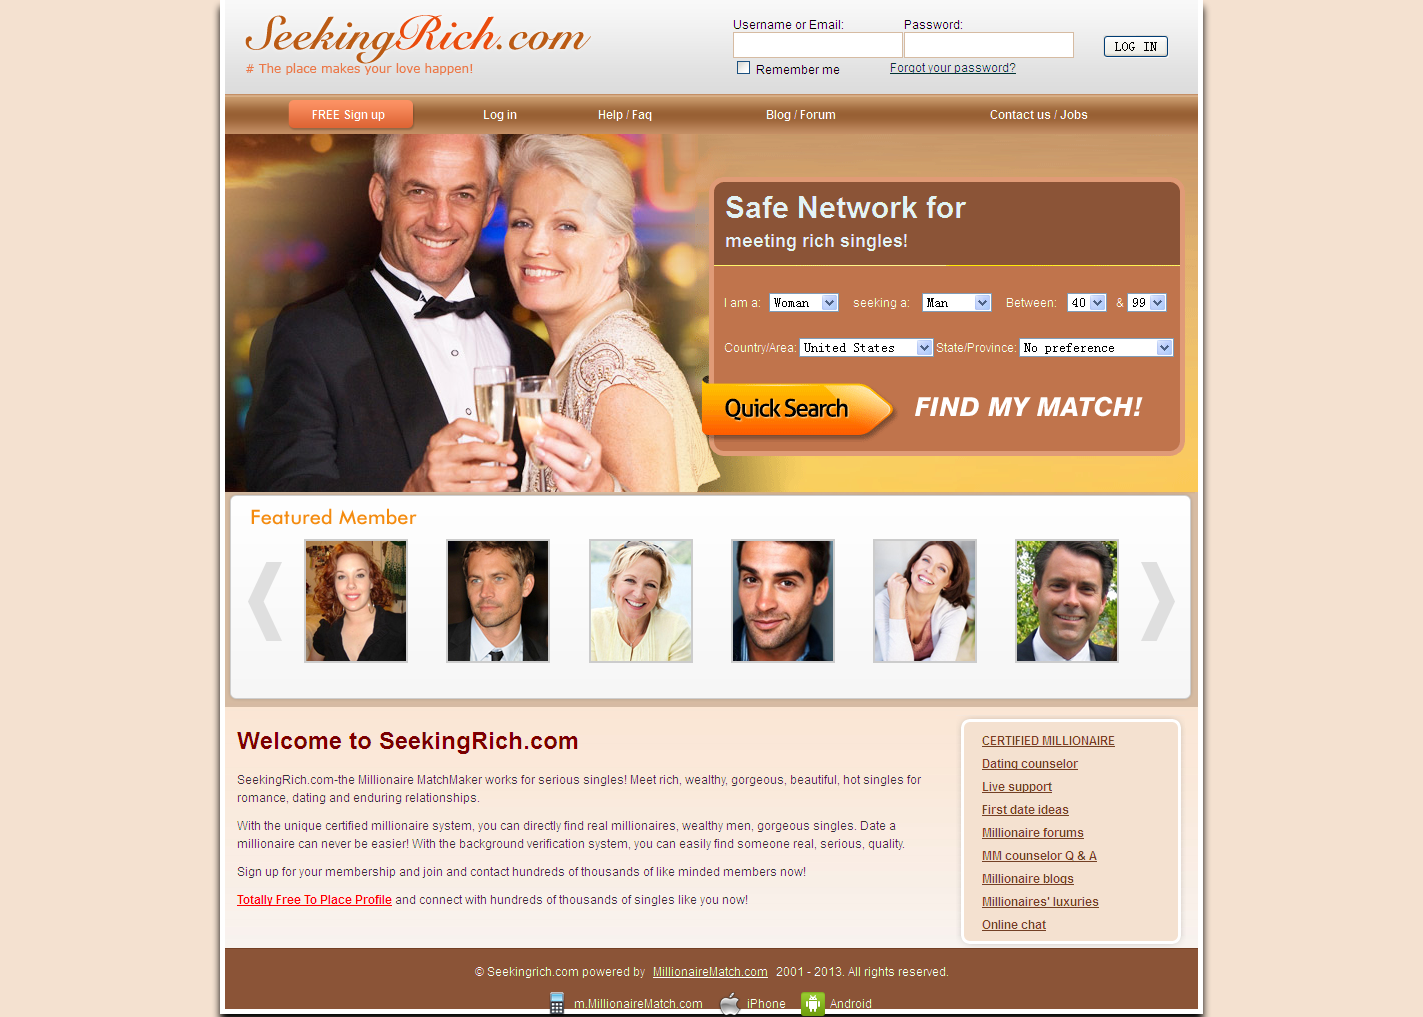 wheatley singles dating site Find local lesbian and gay women on pinksofacom, a lesbian dating site for single women seeking other women for serious relationships, friends and support.